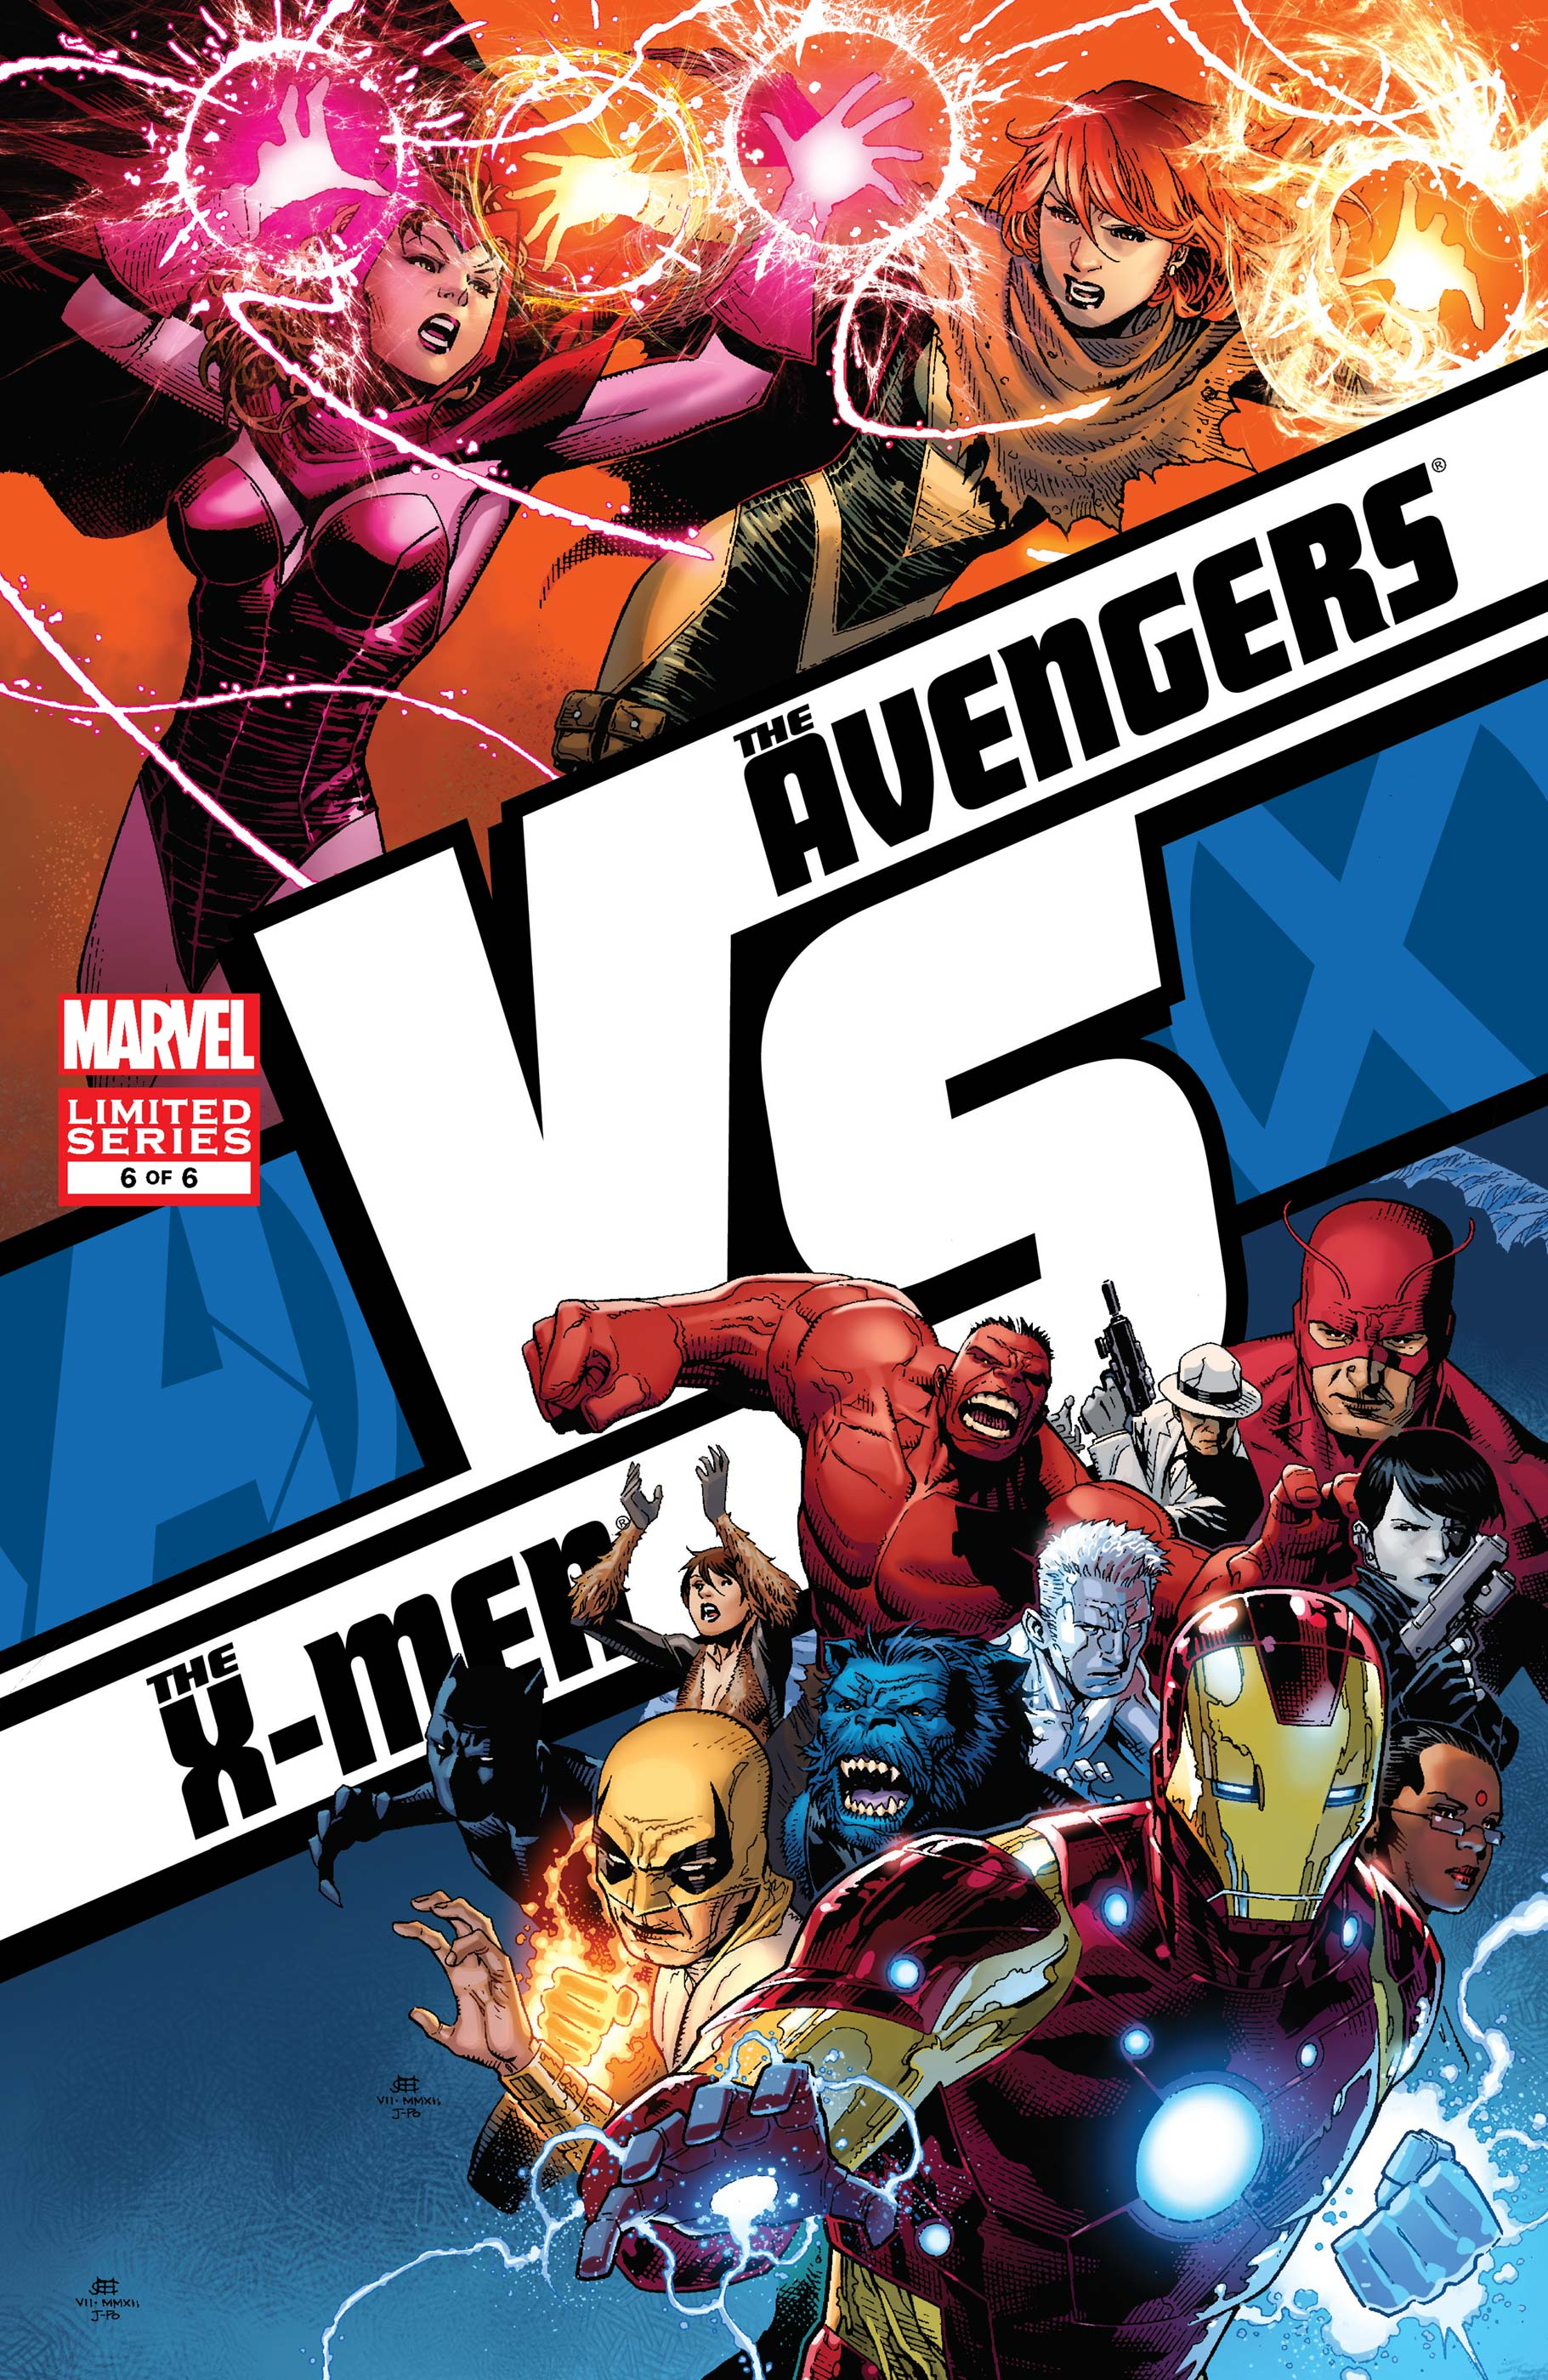 Avengers Vs. X-Men: Versus (2011) #6